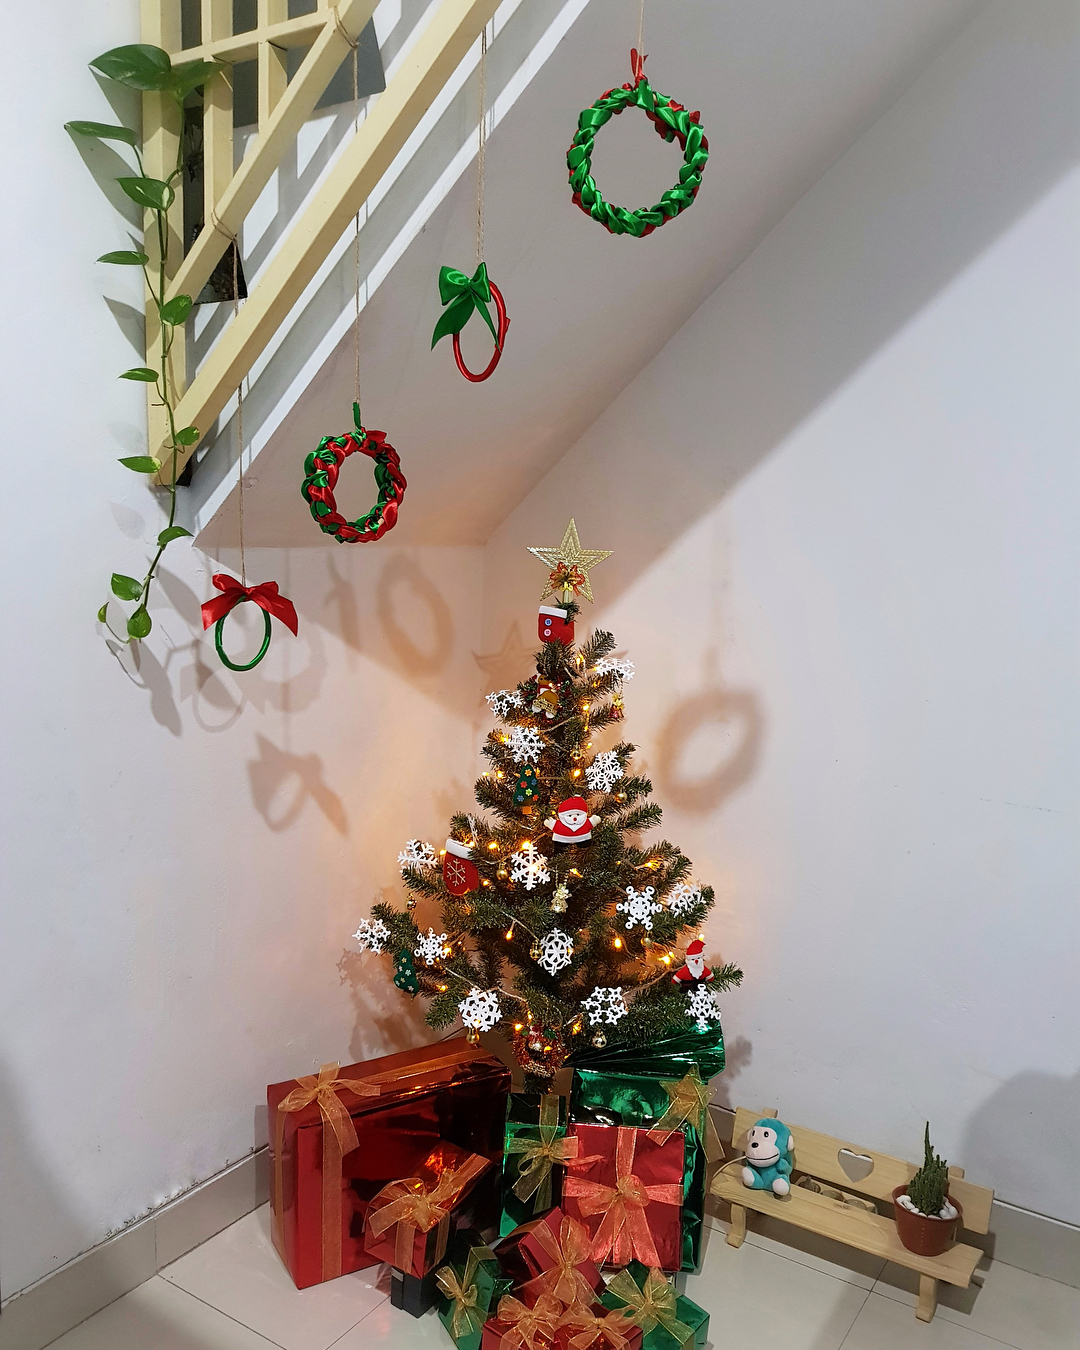 Christmas Spirit in Homes 2020 (13)